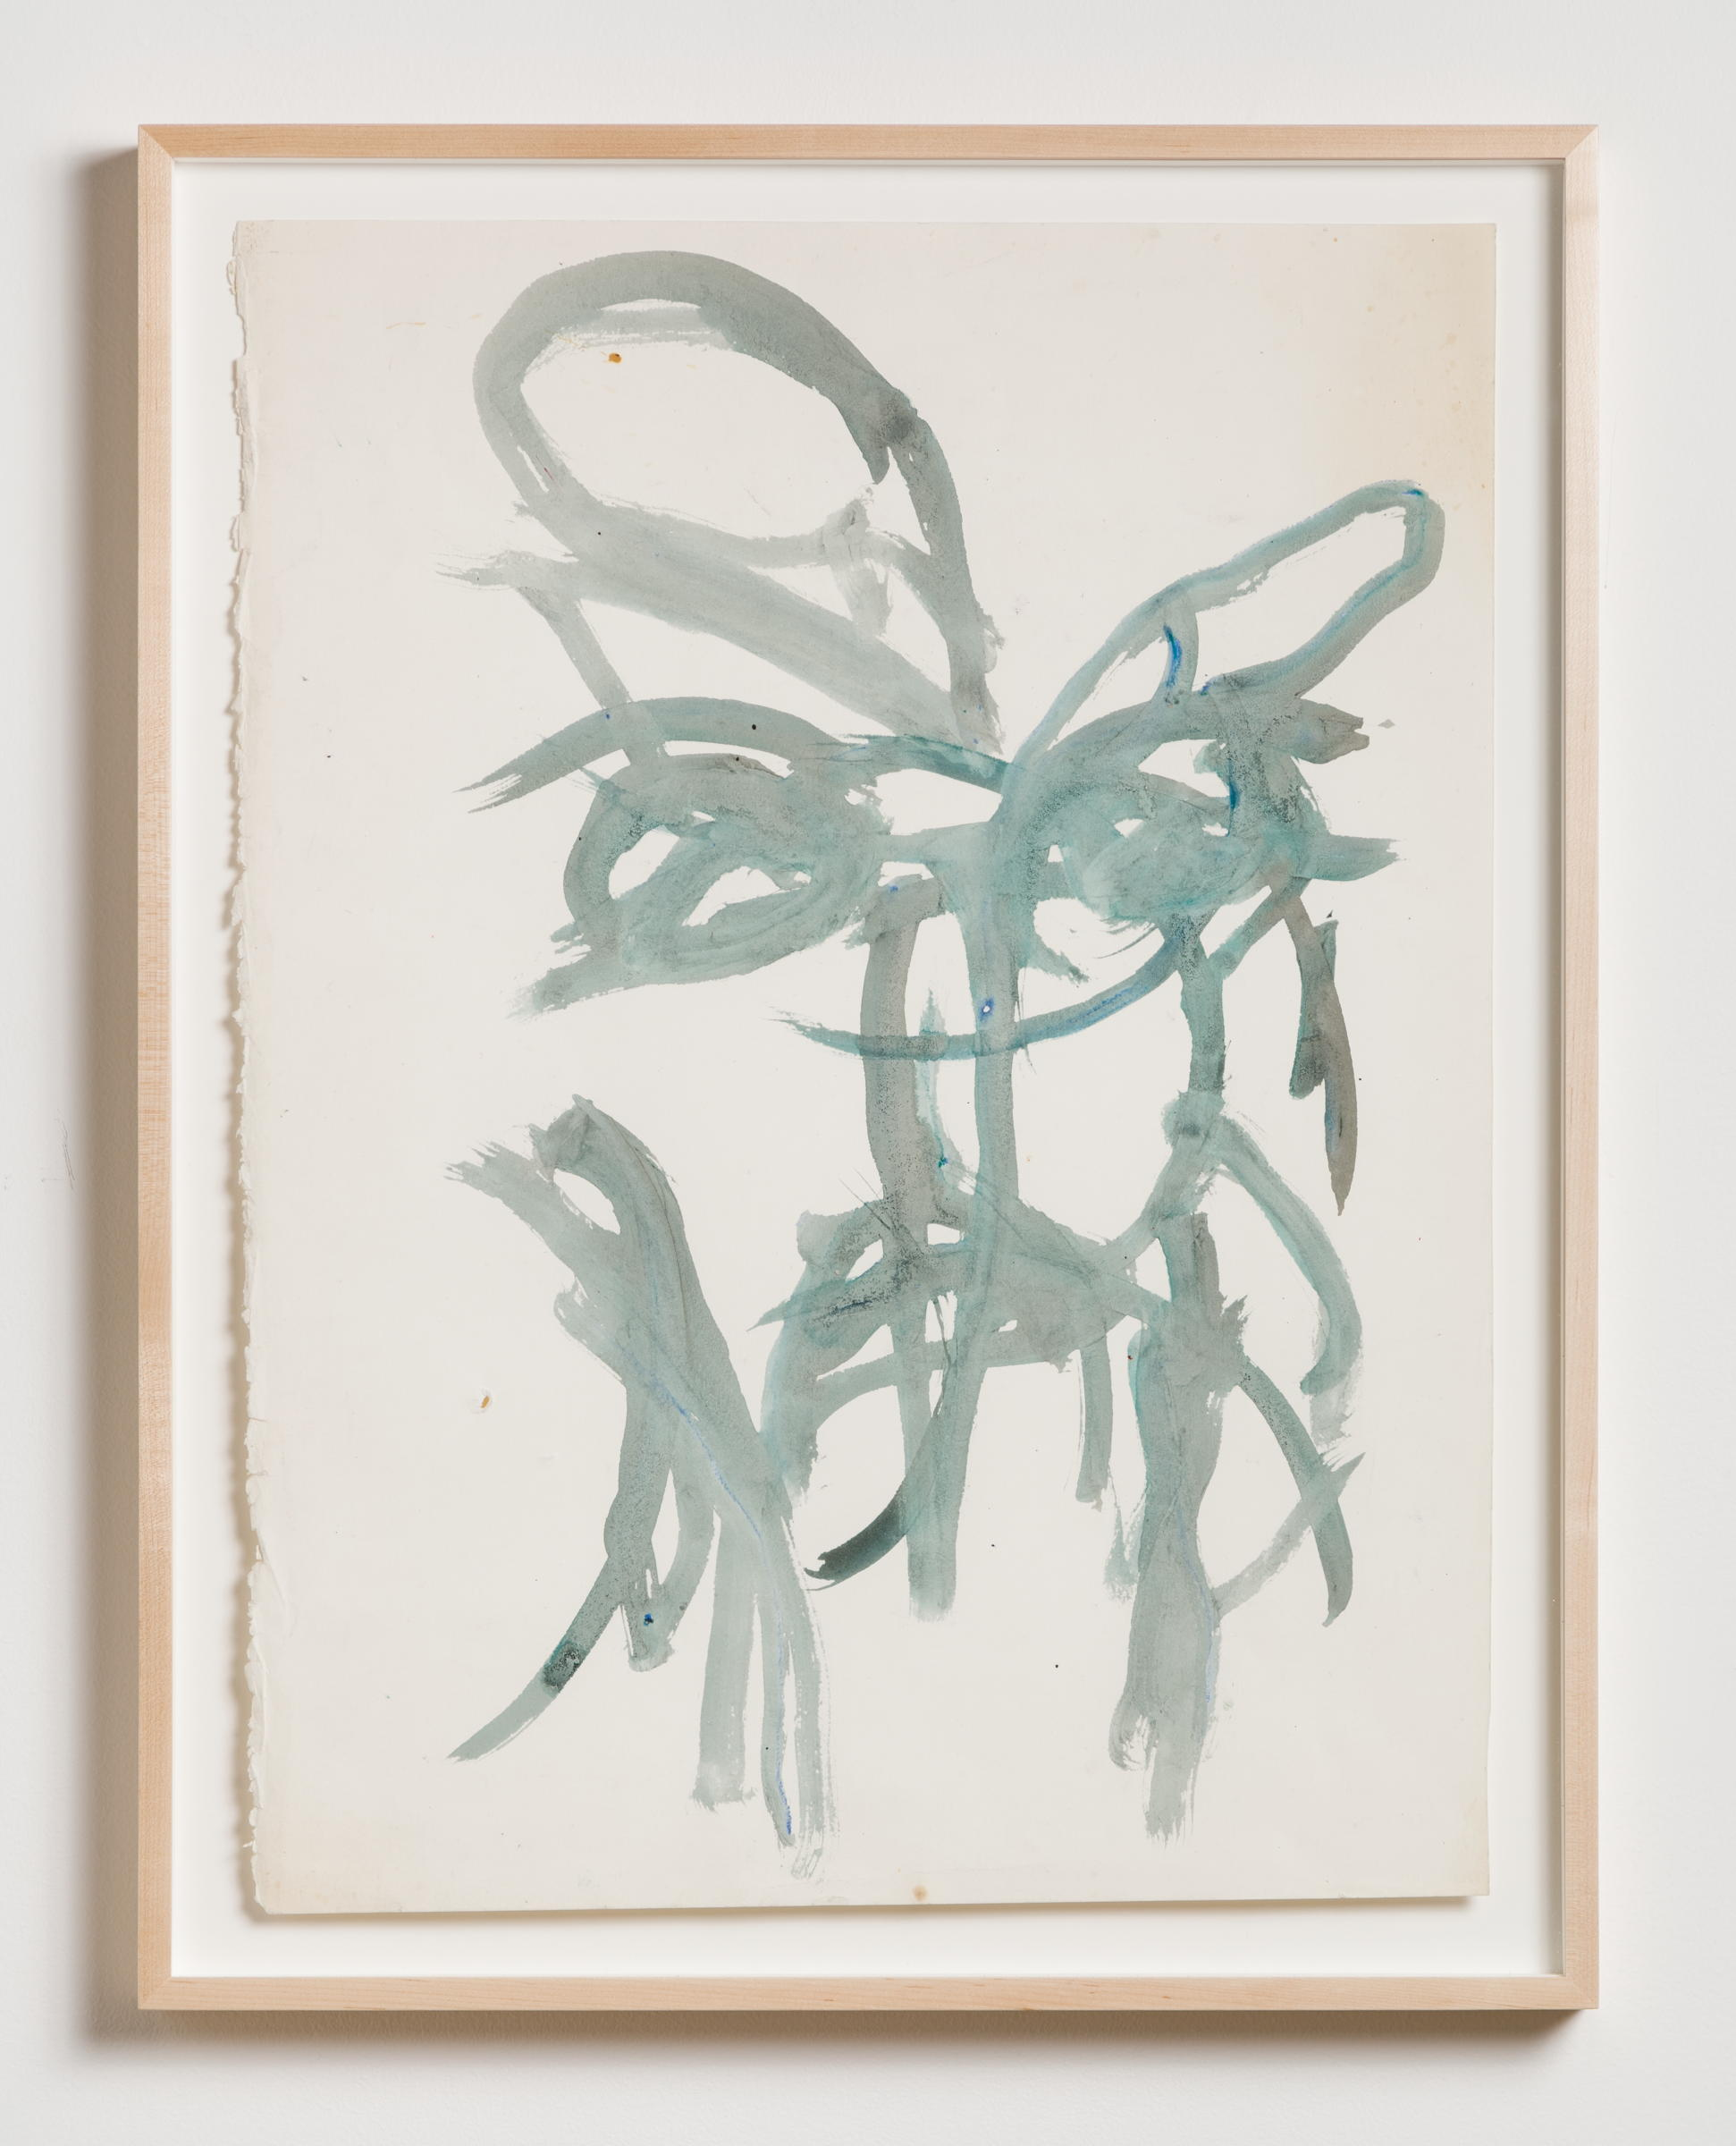 Dan Asher,  Untitled , 1980s, oil stick on paper, 26 × 19 in., 31 ¼ × 24 ¼ in. (framed)